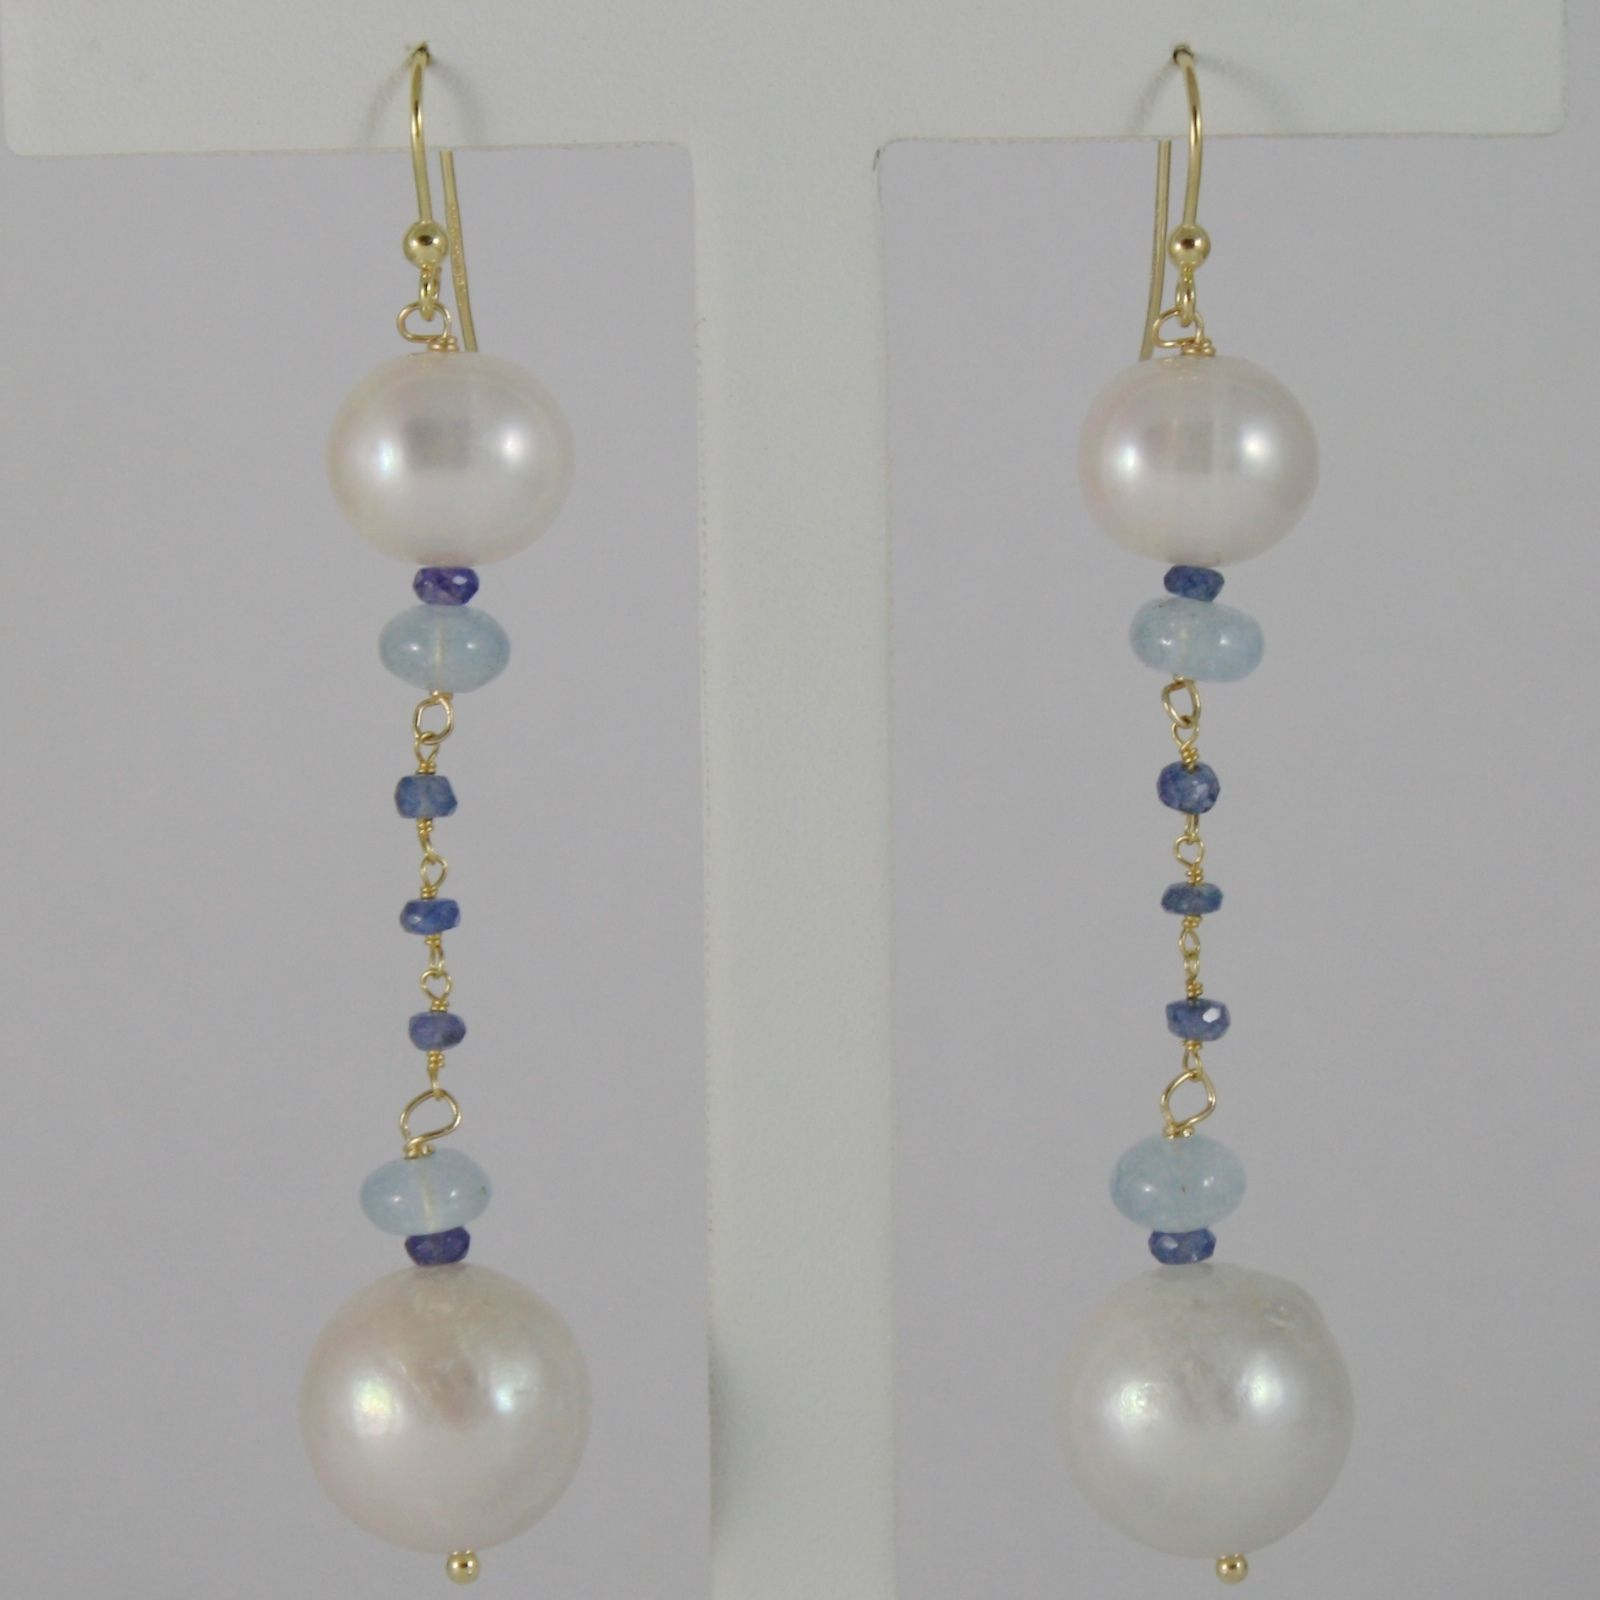 18K YELLOW GOLD PENDANT EARRINGS BIG 13 MM WHITE FW PEARLS, SAPPHIRE, AQUAMARINE